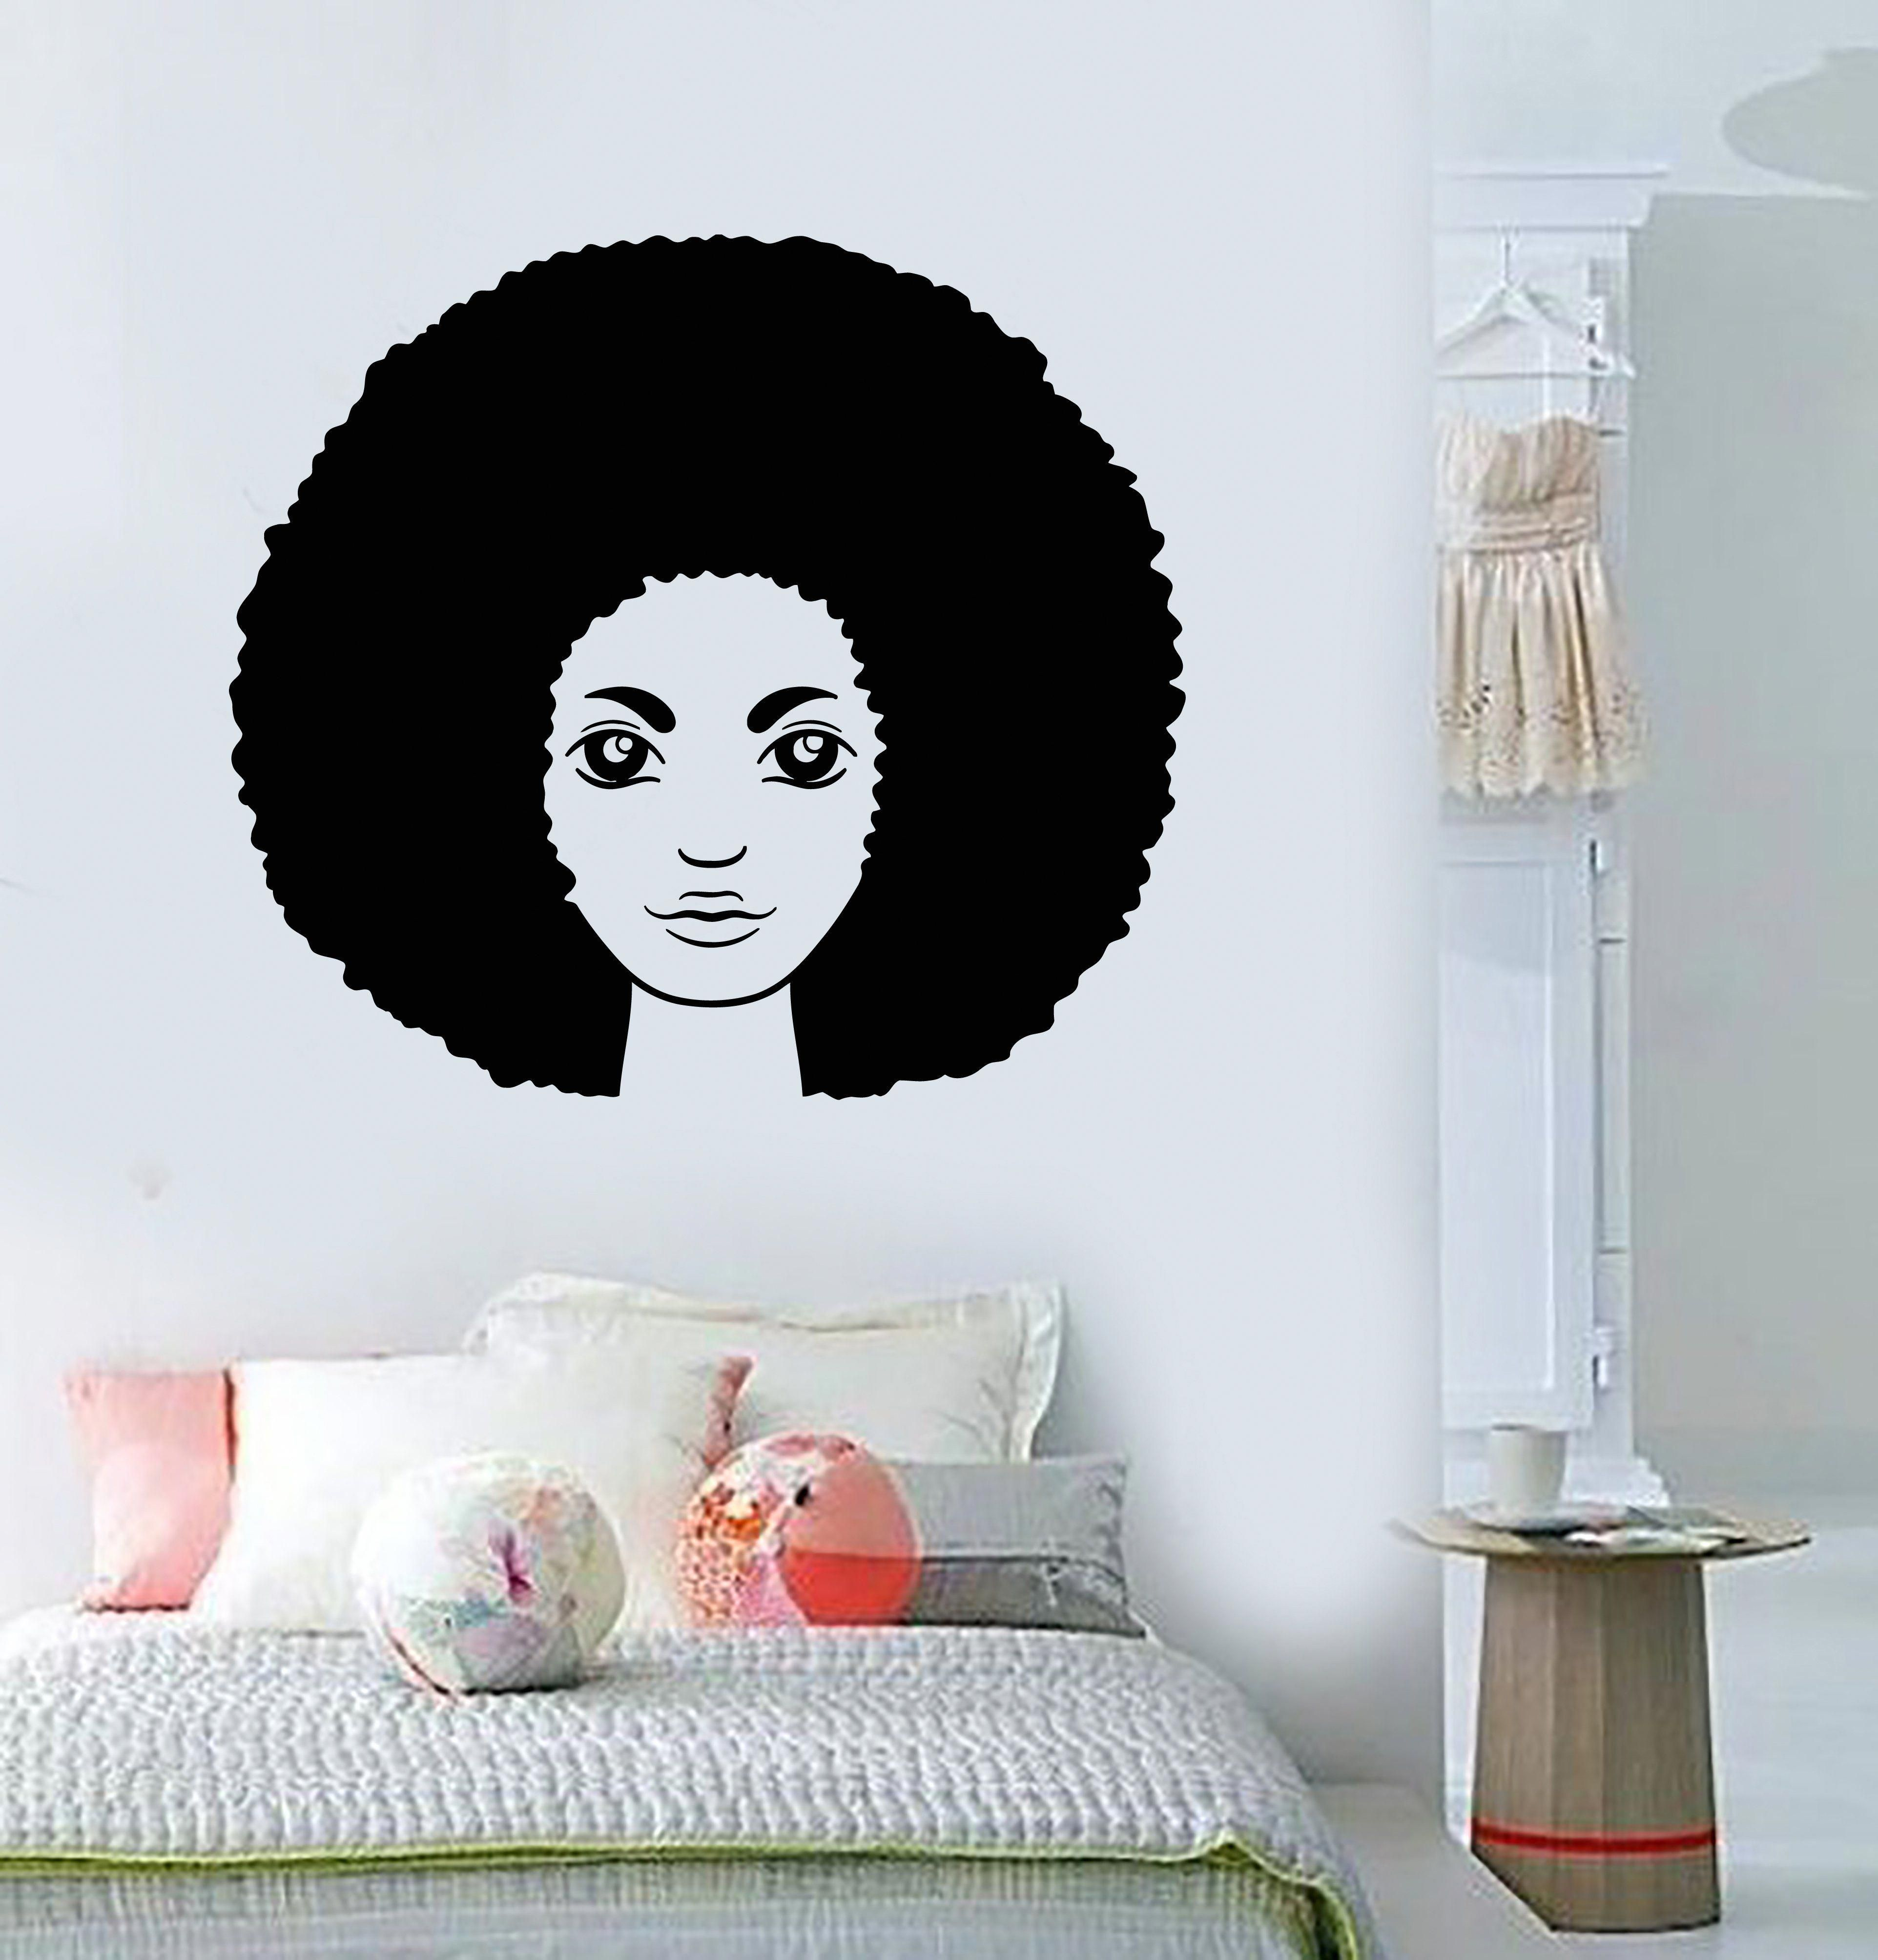 Vinyl wall decal african hairstyle hair woman black girl head